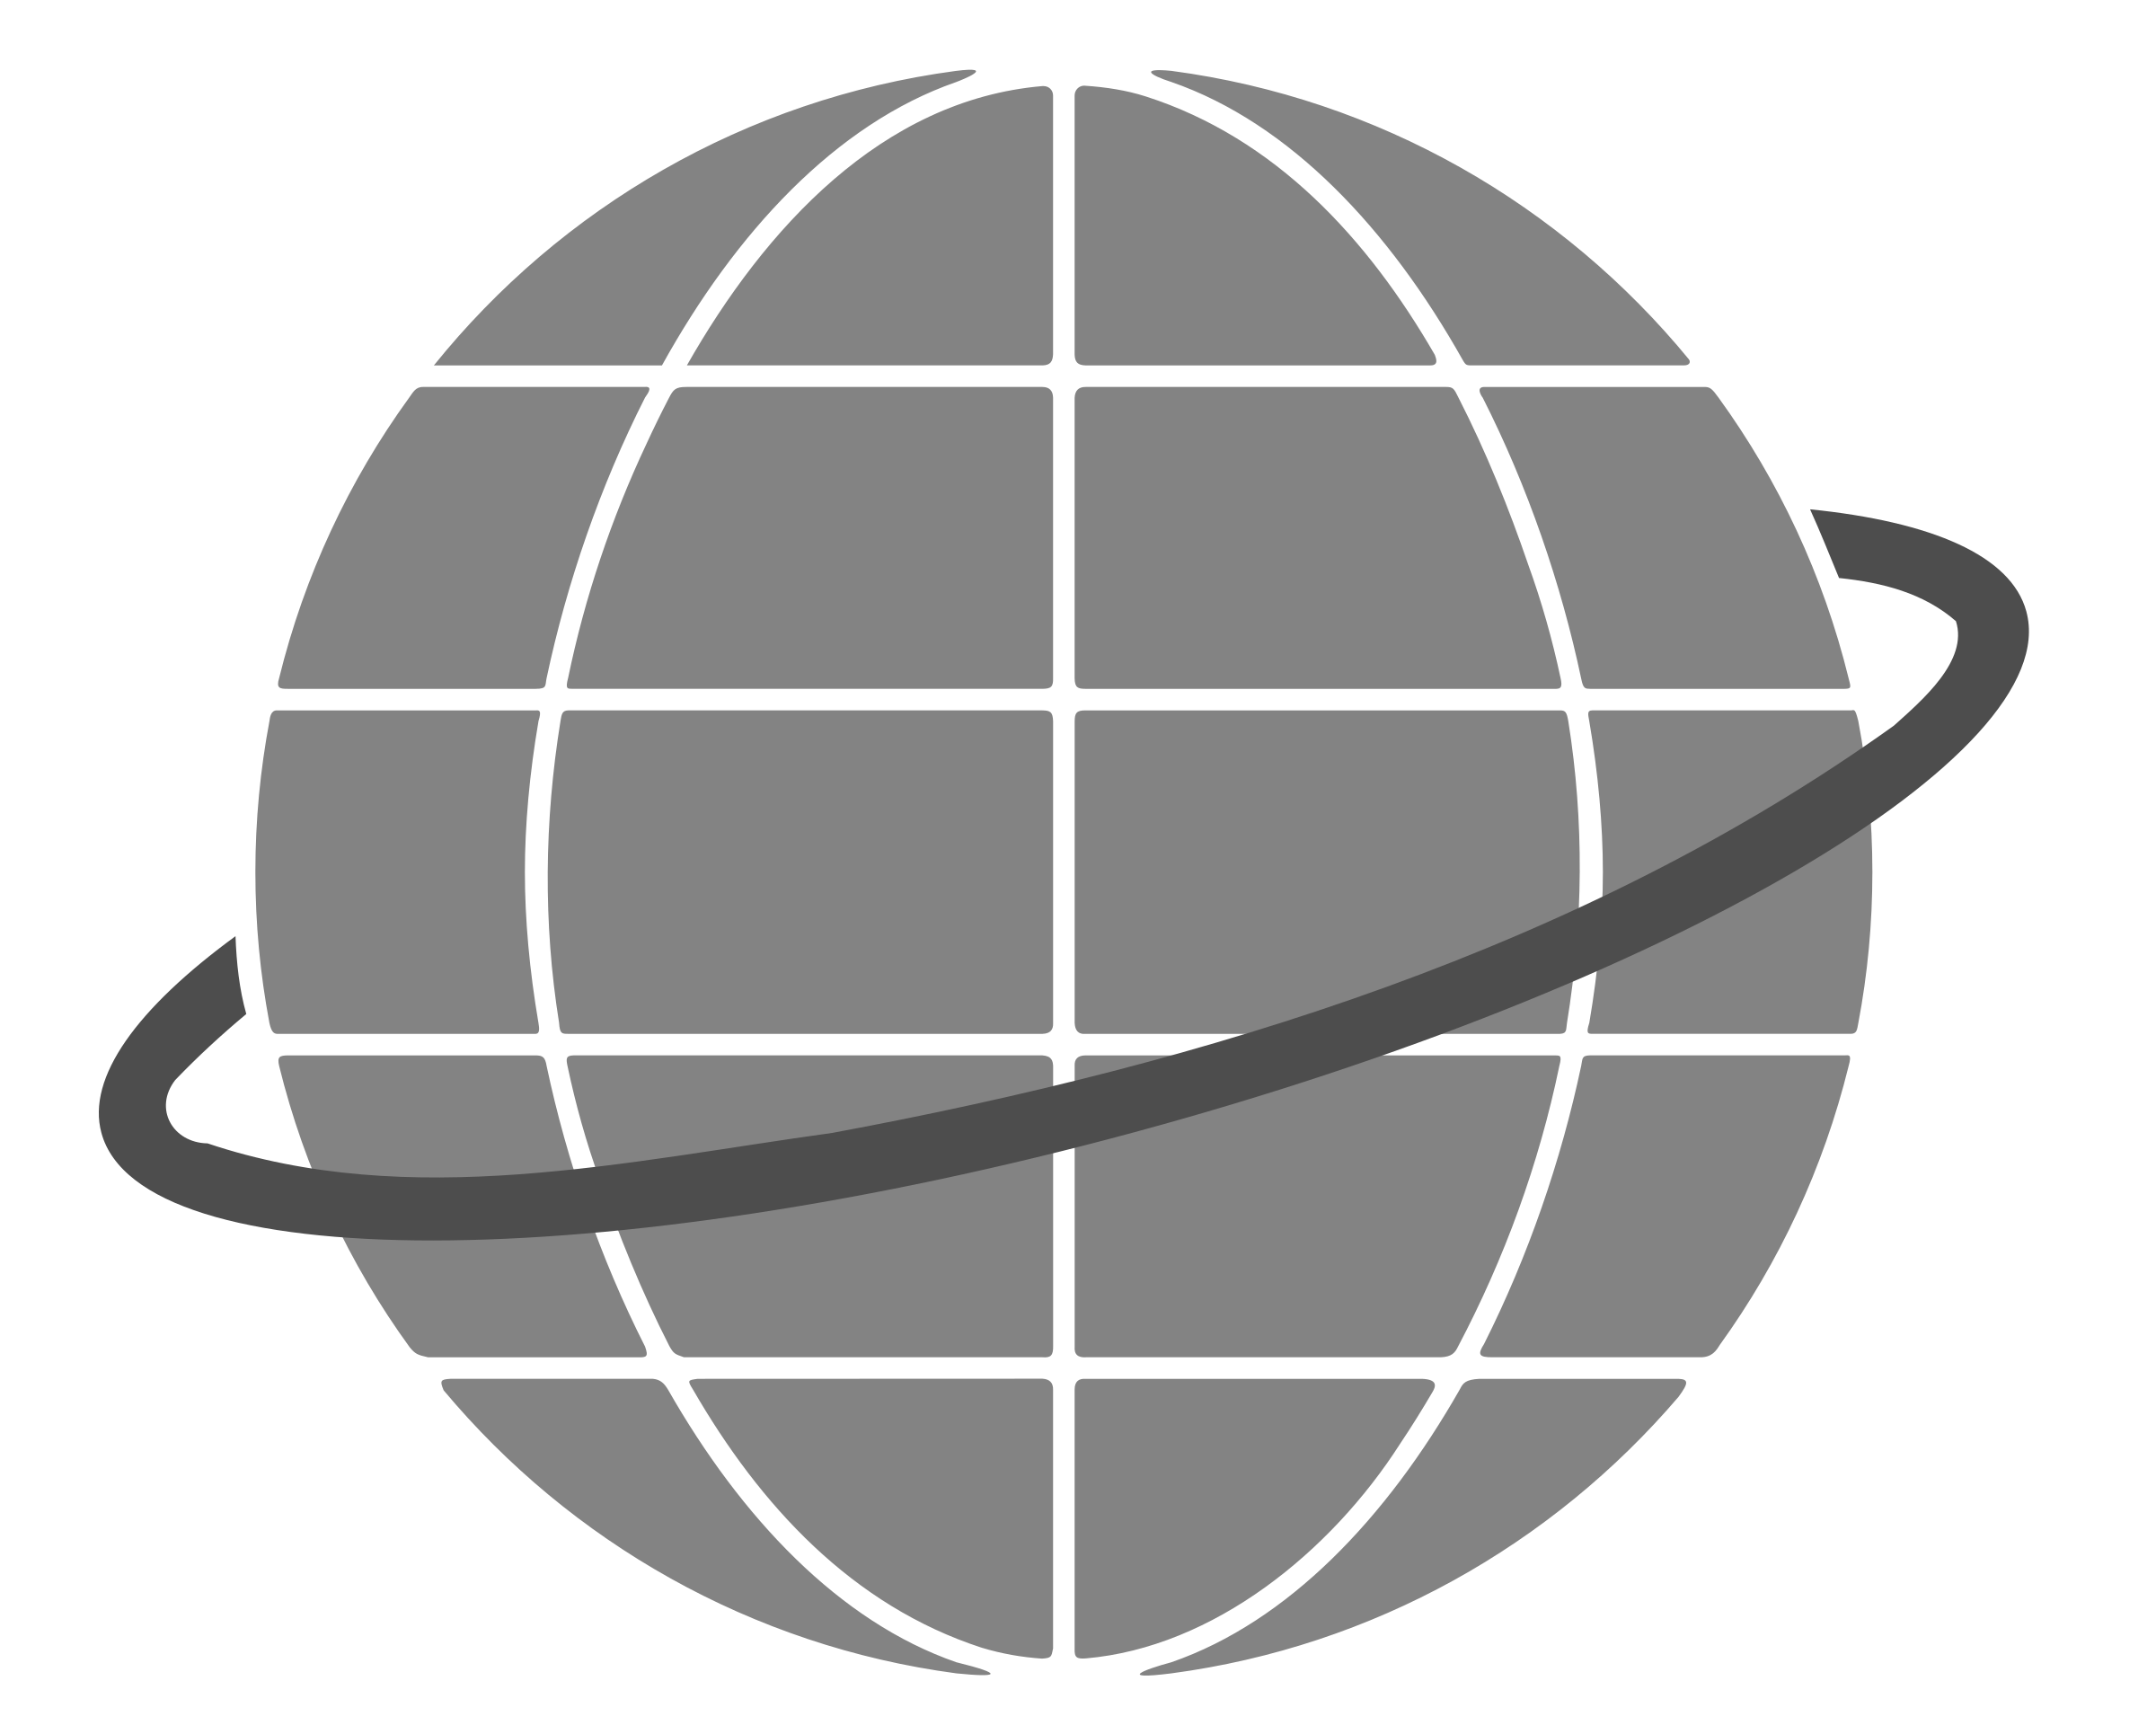 Simple Globe by bnielsen